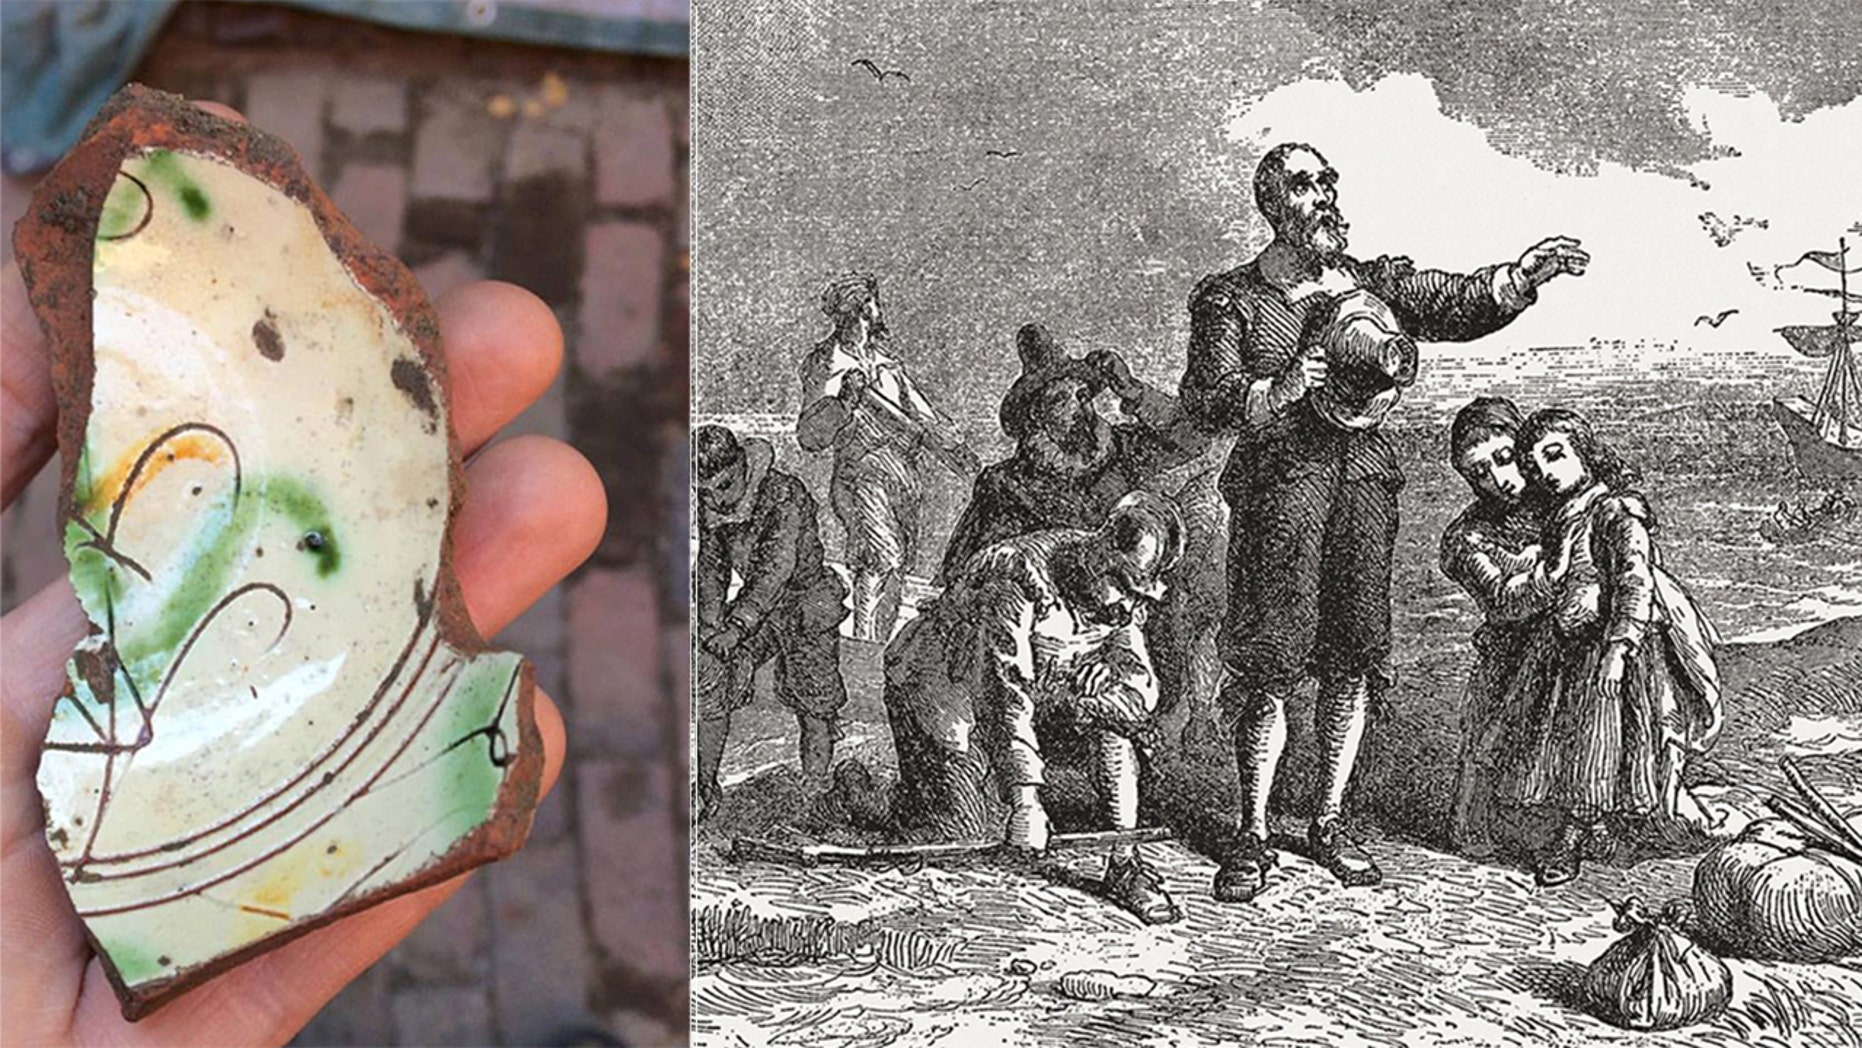 The fragment of the 17th century Italian plate discovered near the Paul Revere House in Boston (City of Boston Archaeology Program) and an illustration of Pilgrim Fathers' embarkation (iStock/ZU_09)